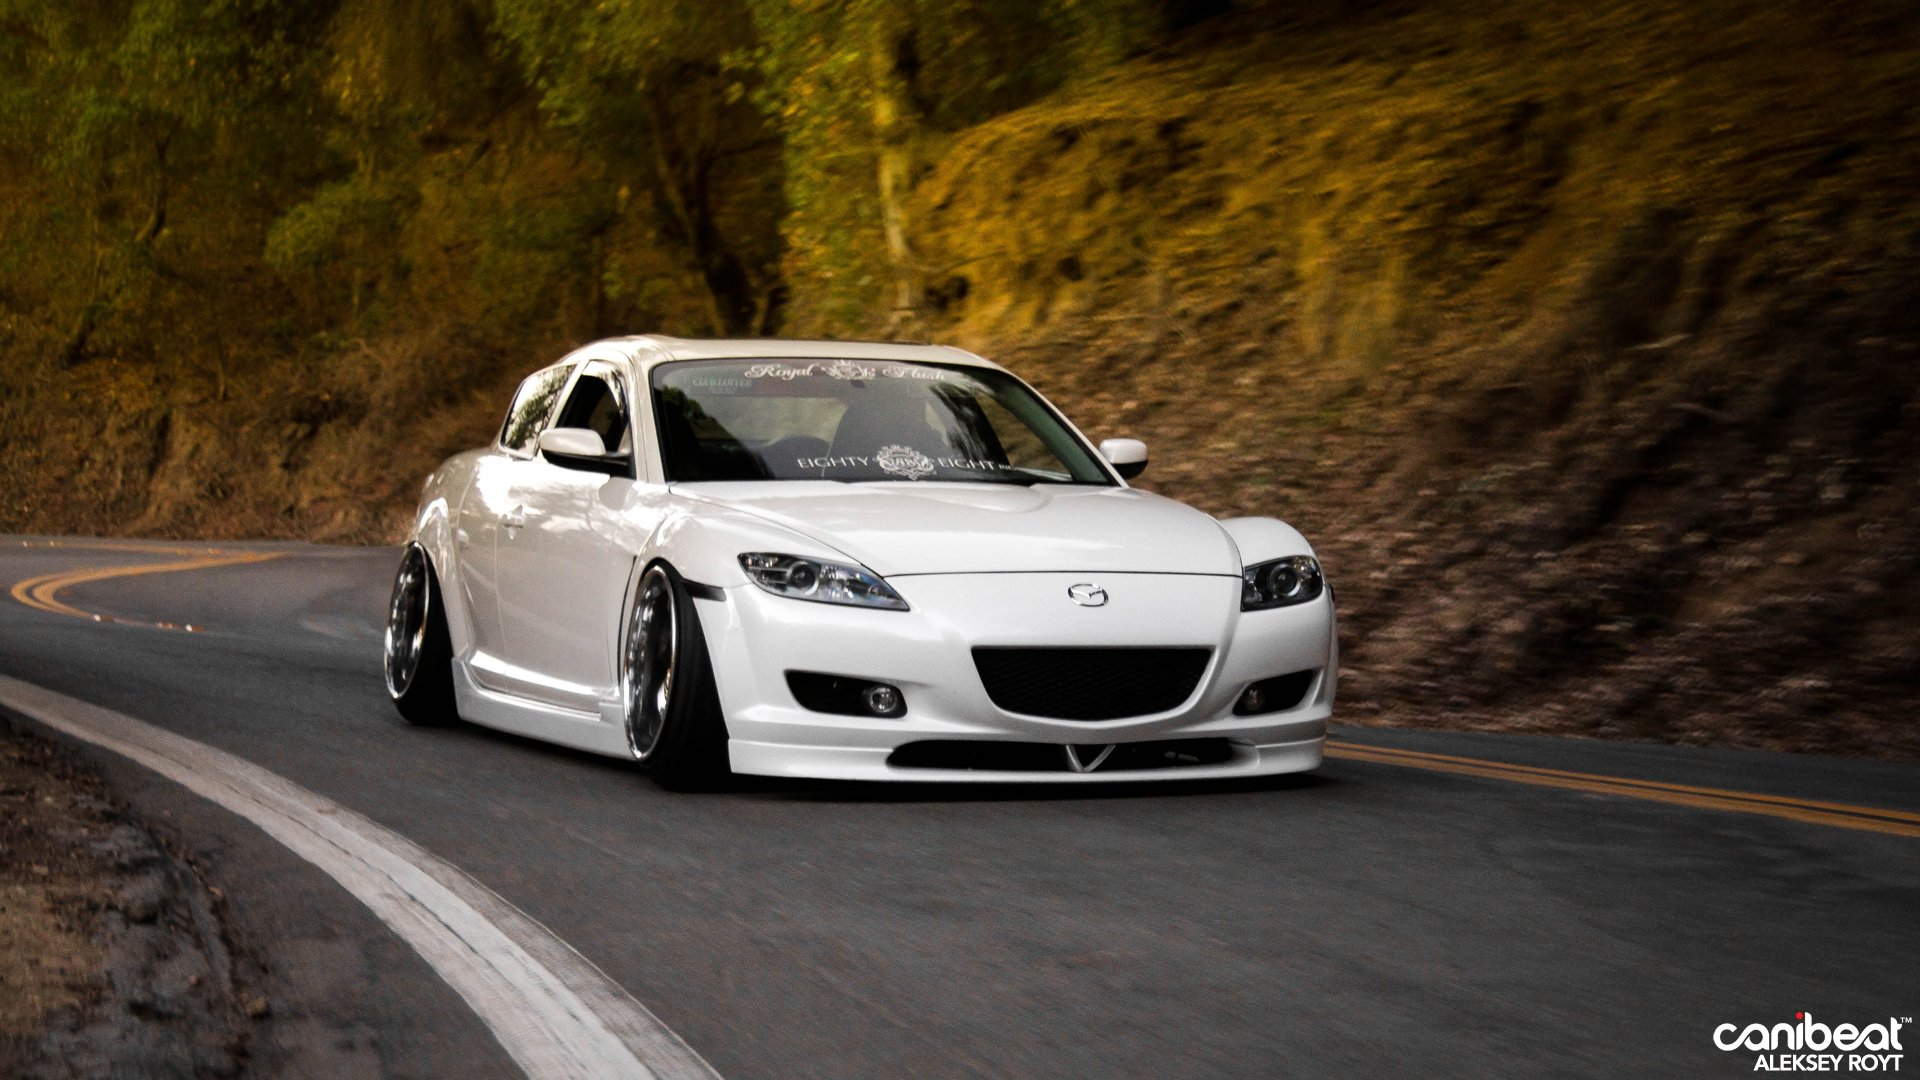 Mazda Rx8 Tuning 2019 2020 New Car Price And Reviews Rx 8 Wiring Harness Varieties Custom Wallpaper 1920x1080 716404 Wallpaperup